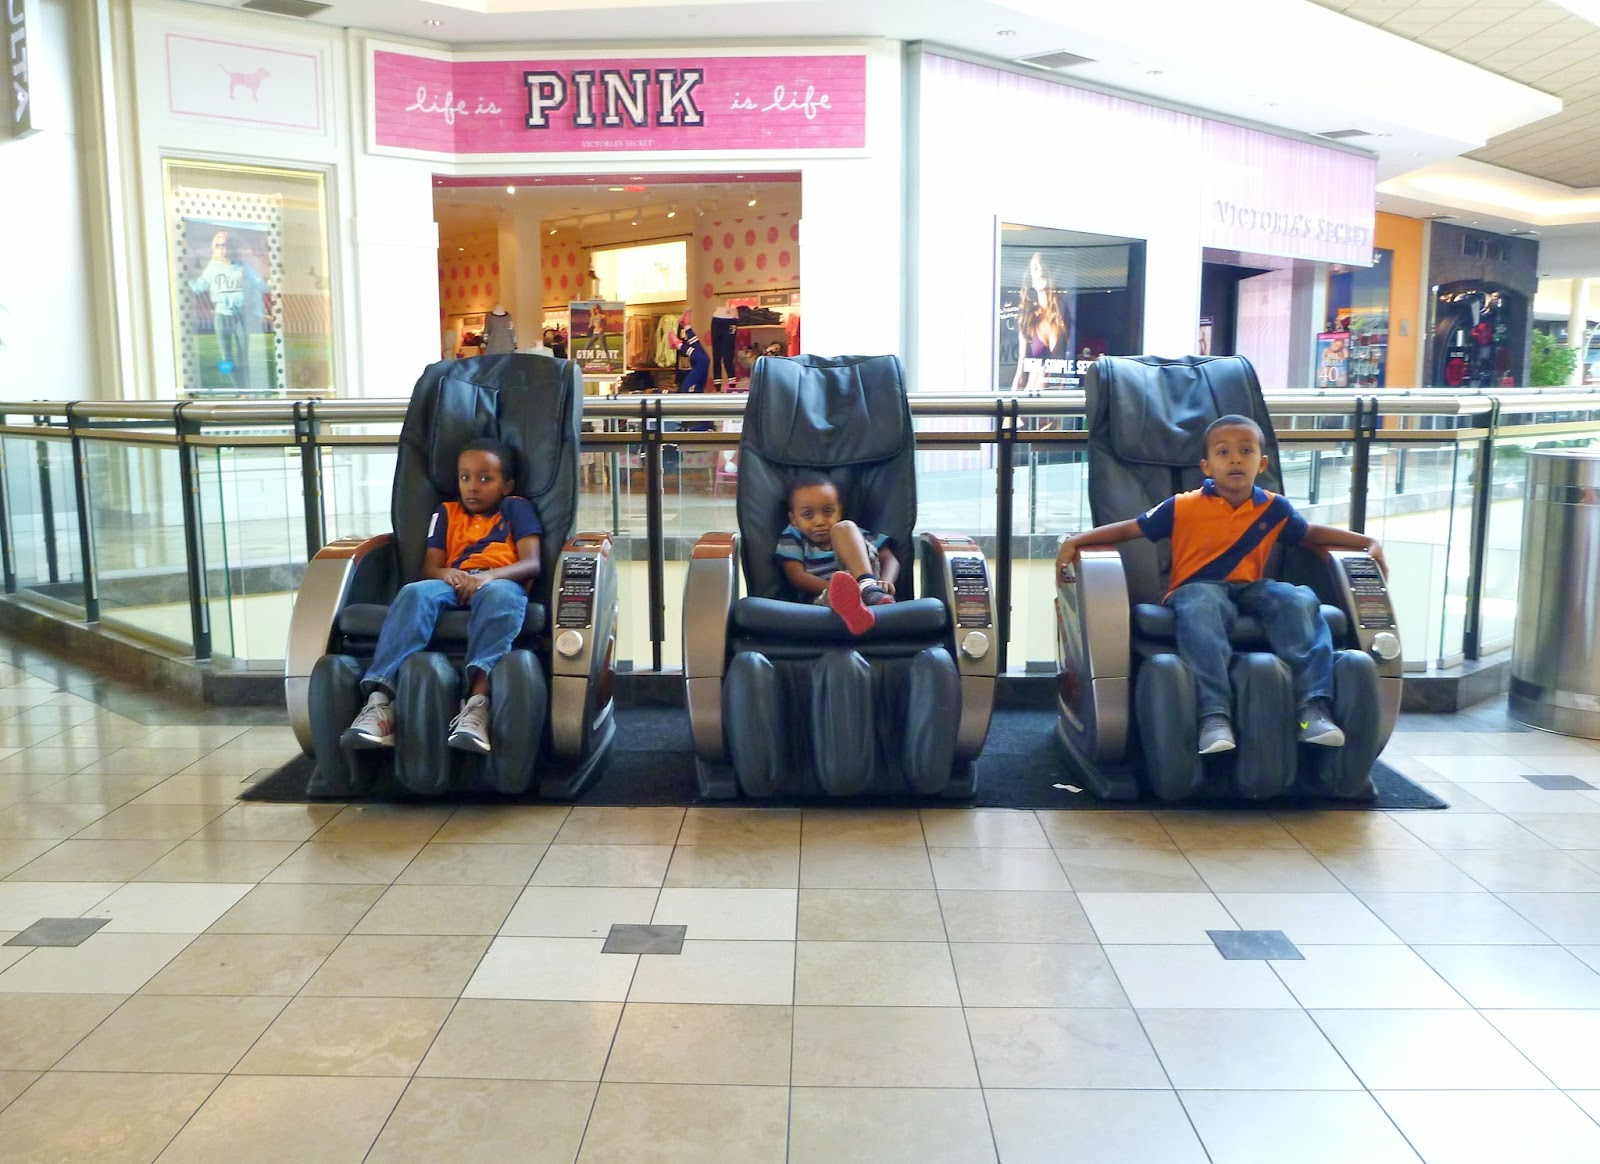 Boys on chairs in shopping mall